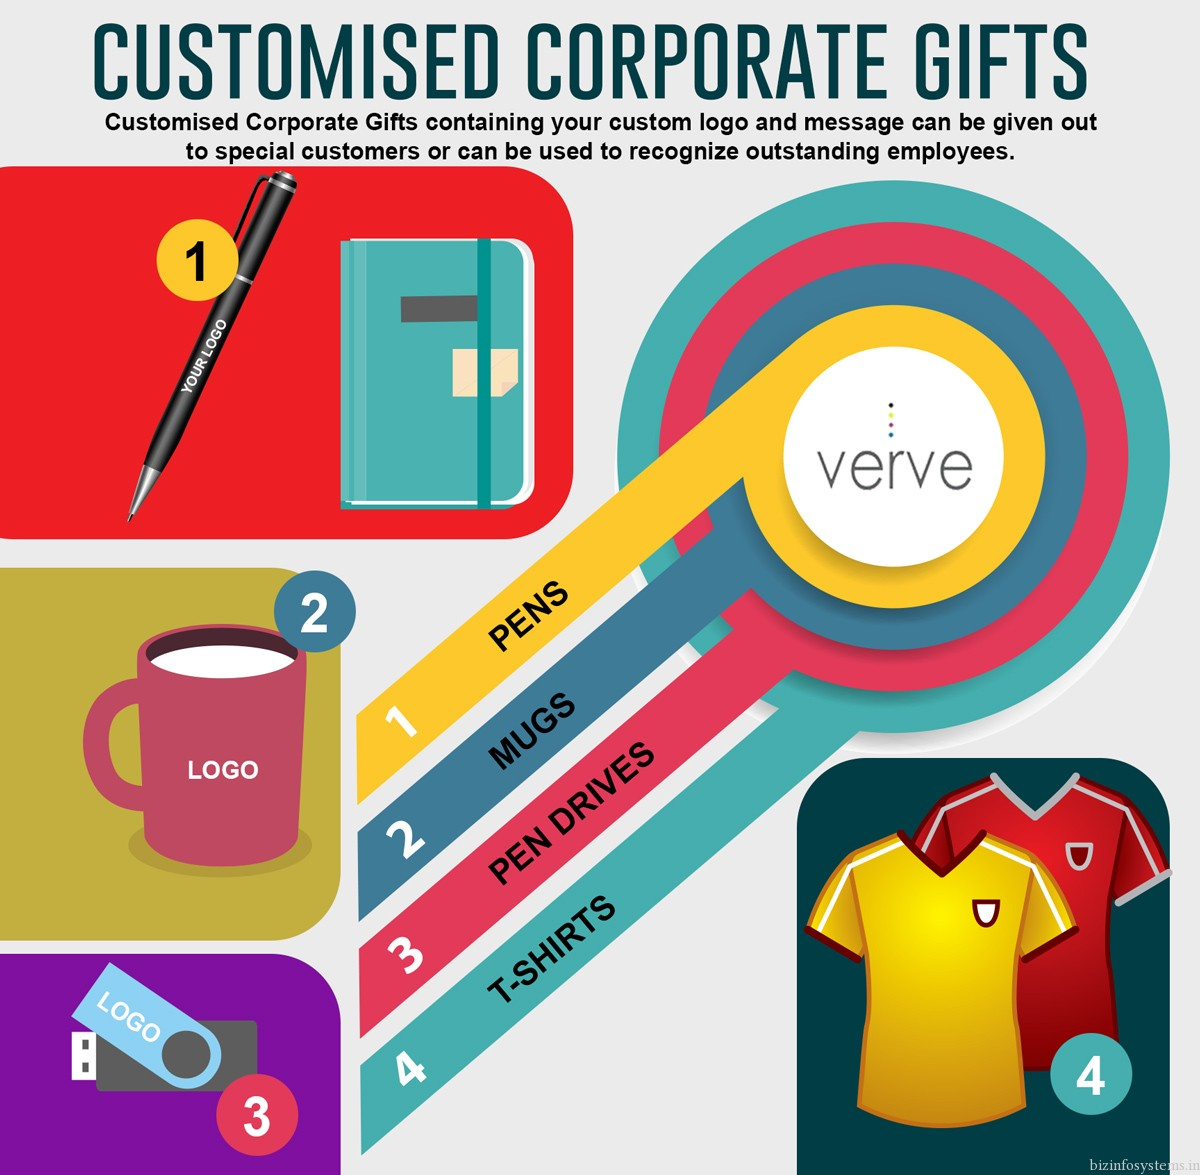 Verve Corporate Gifts Suppliers / Image 1